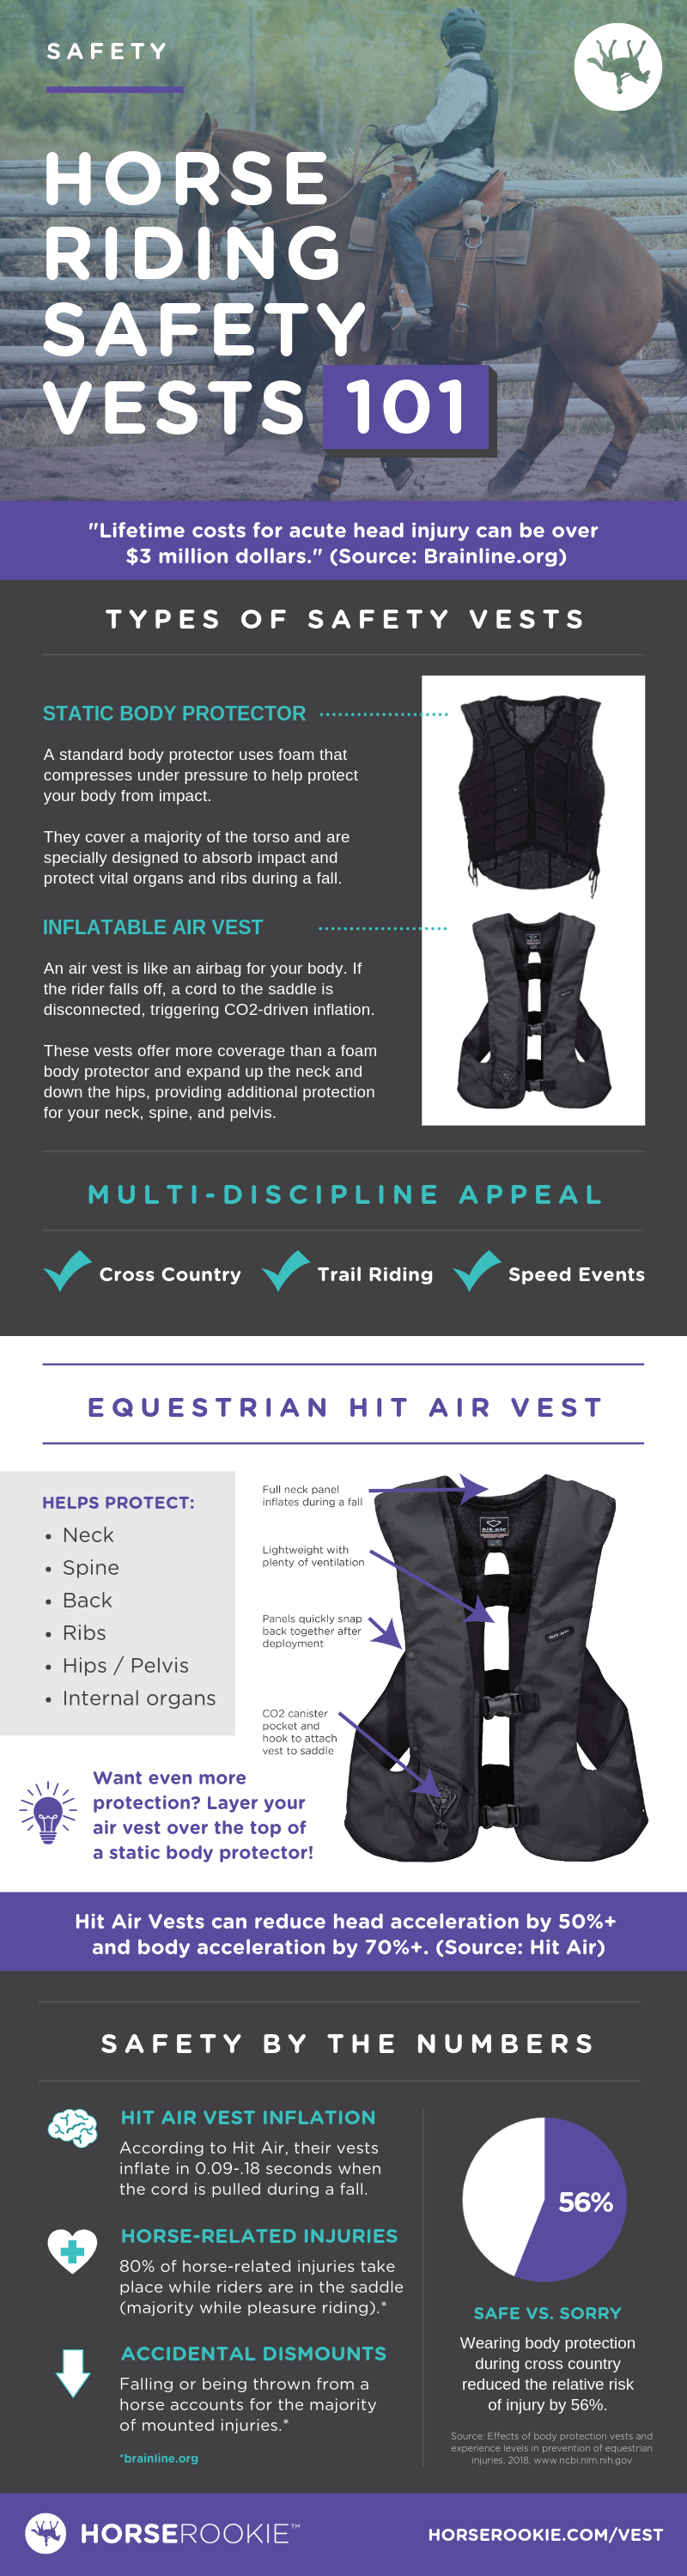 Horse Riding Safety Vest Infographic